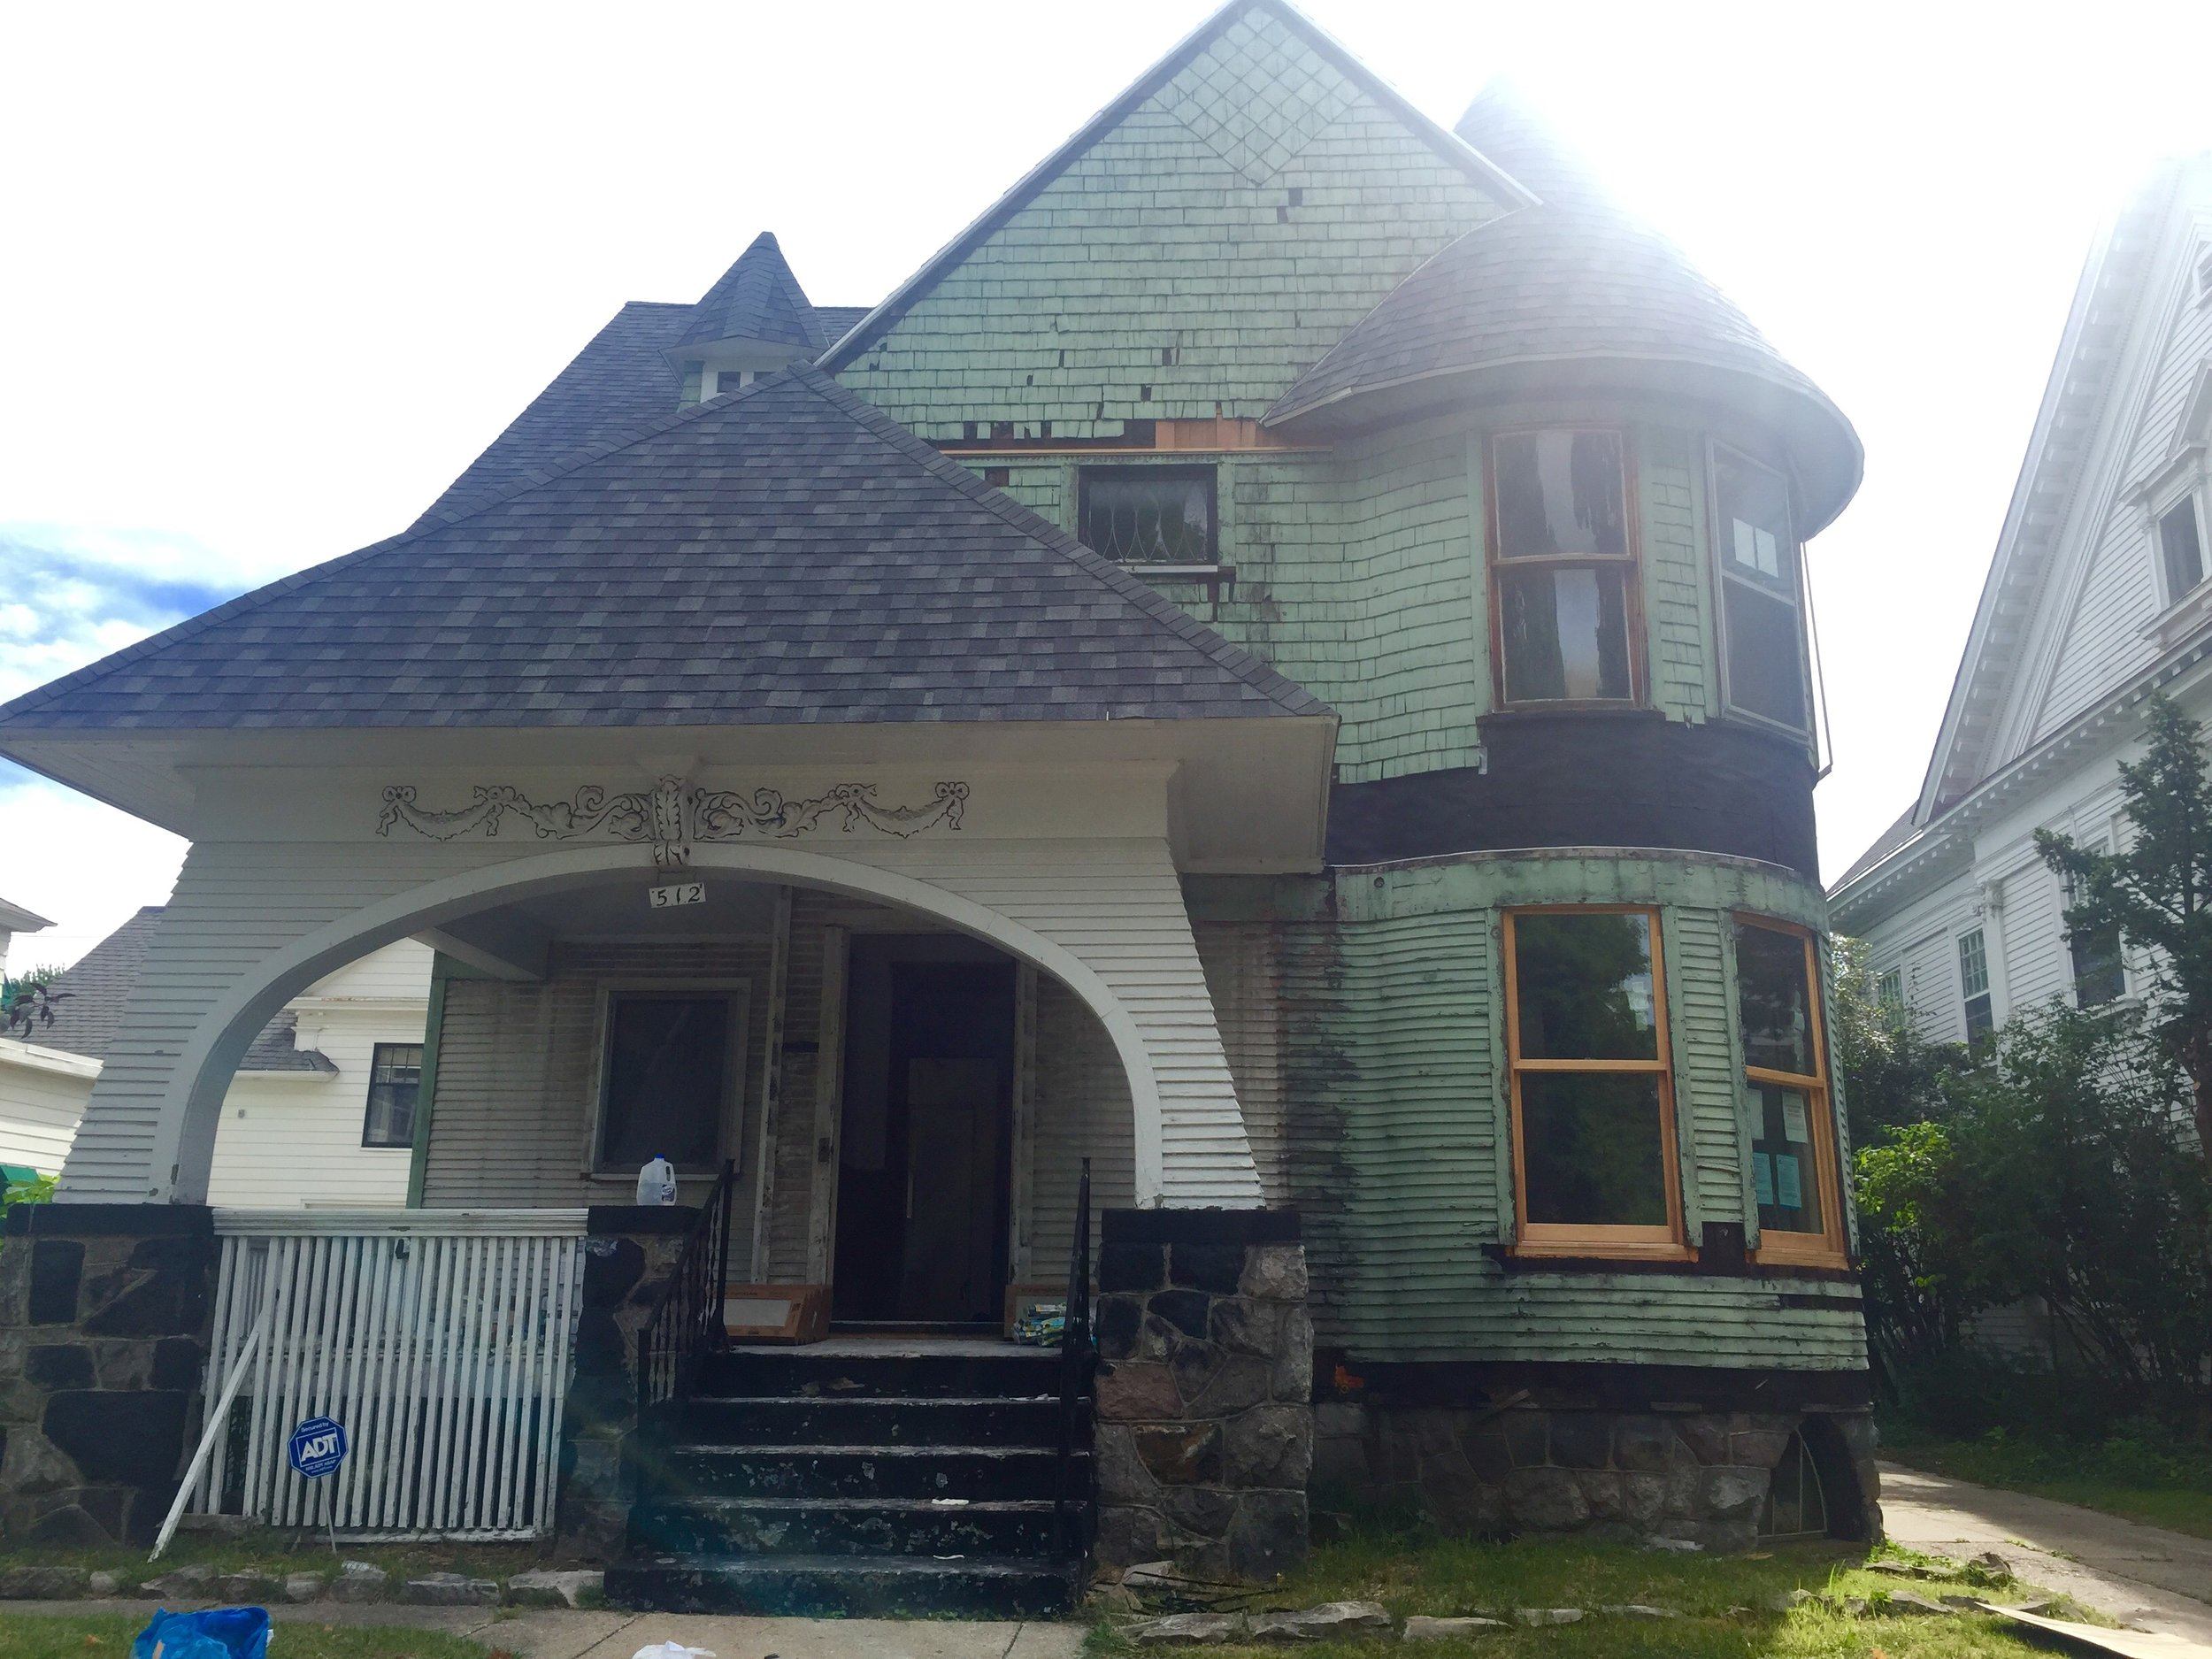 Photo of house from 2016 during renovations